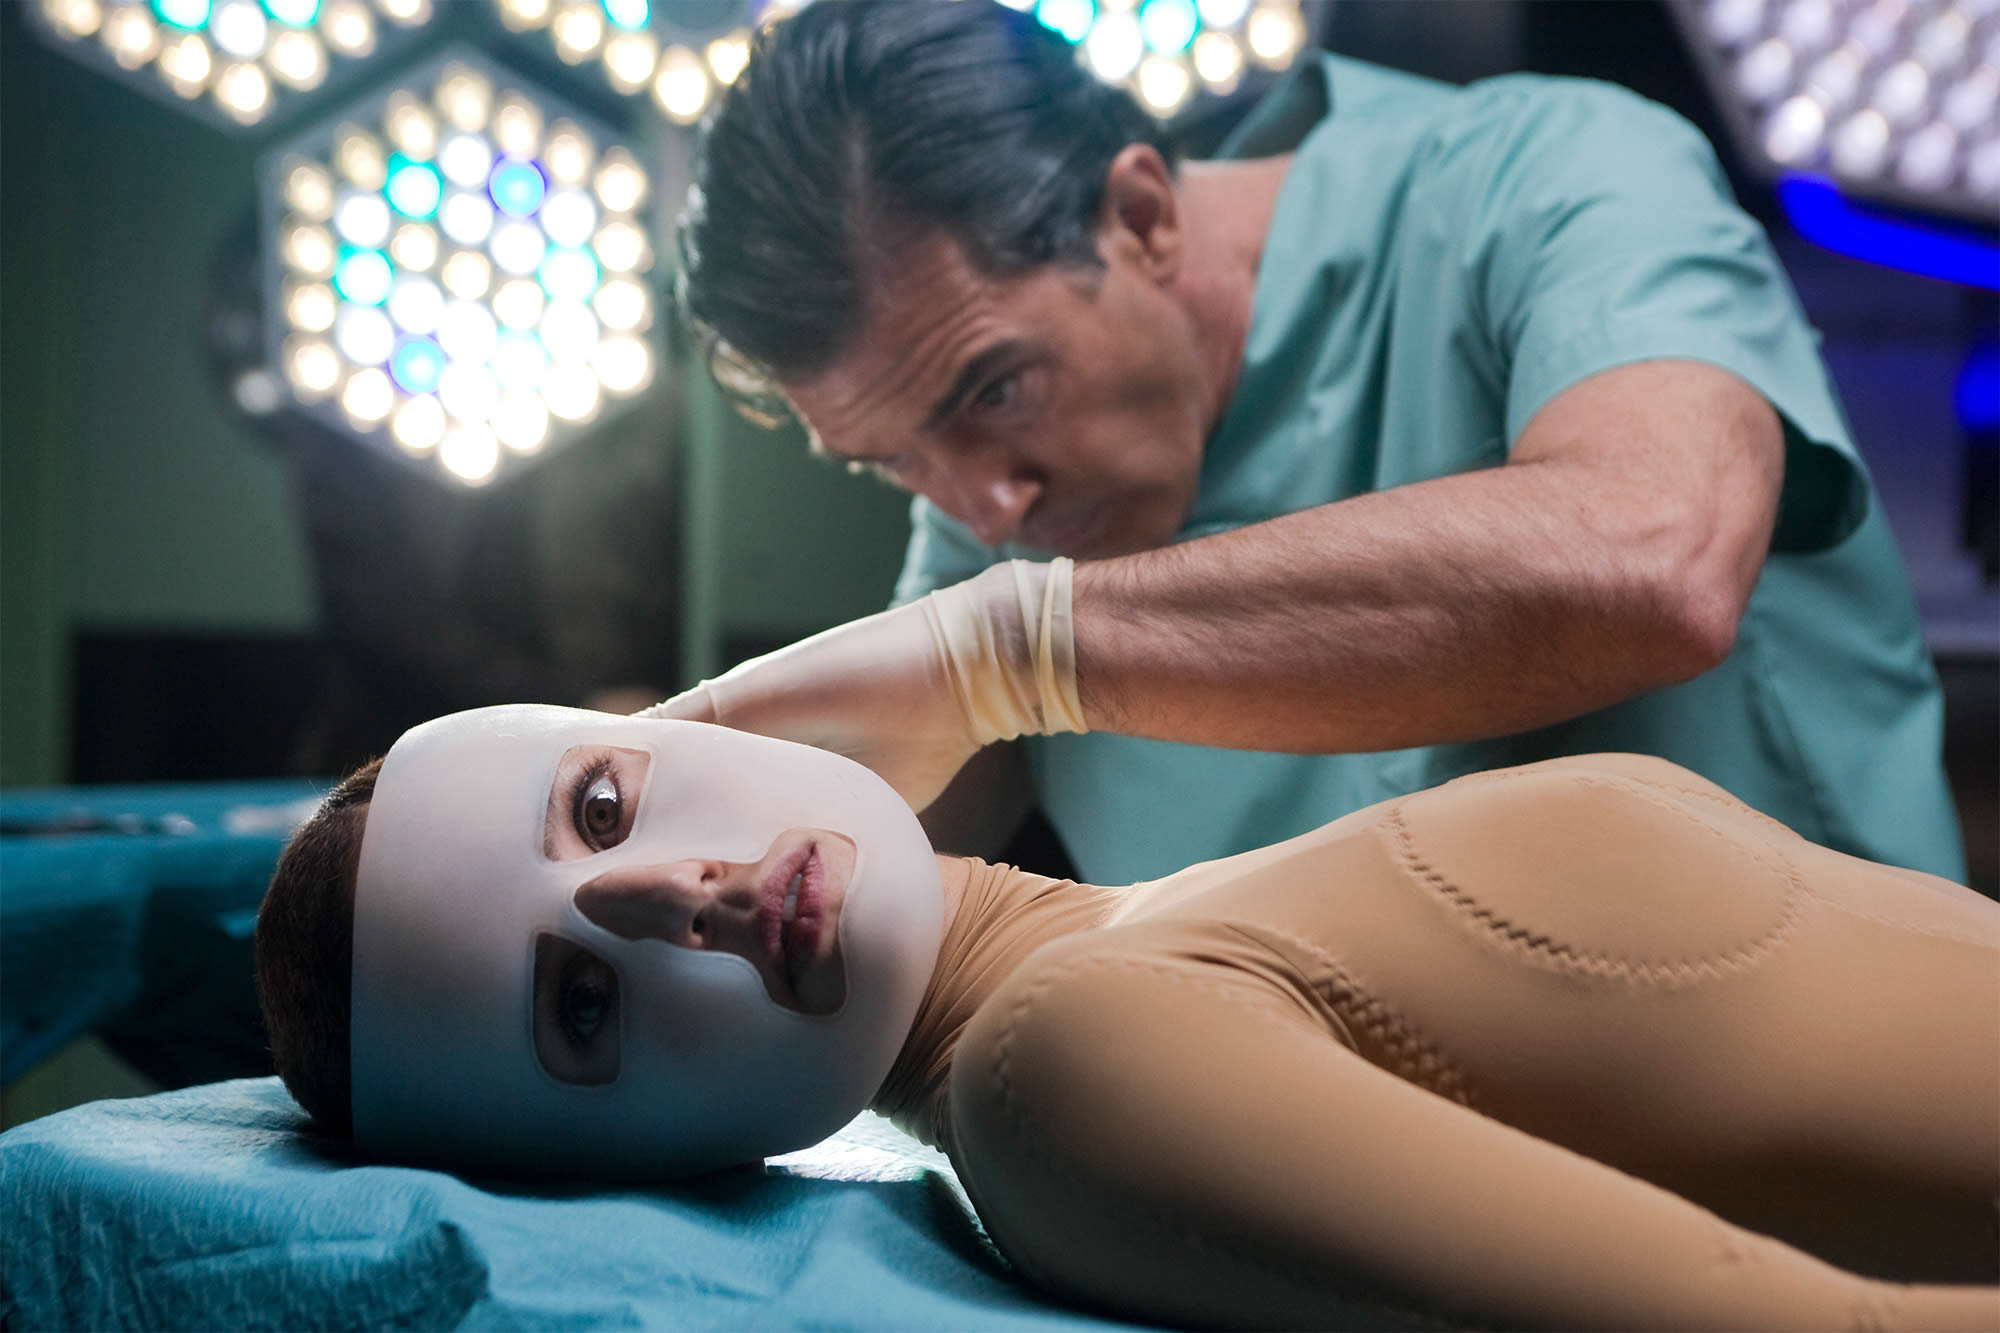 10 Movies Featuring Body Modification and Tattoos